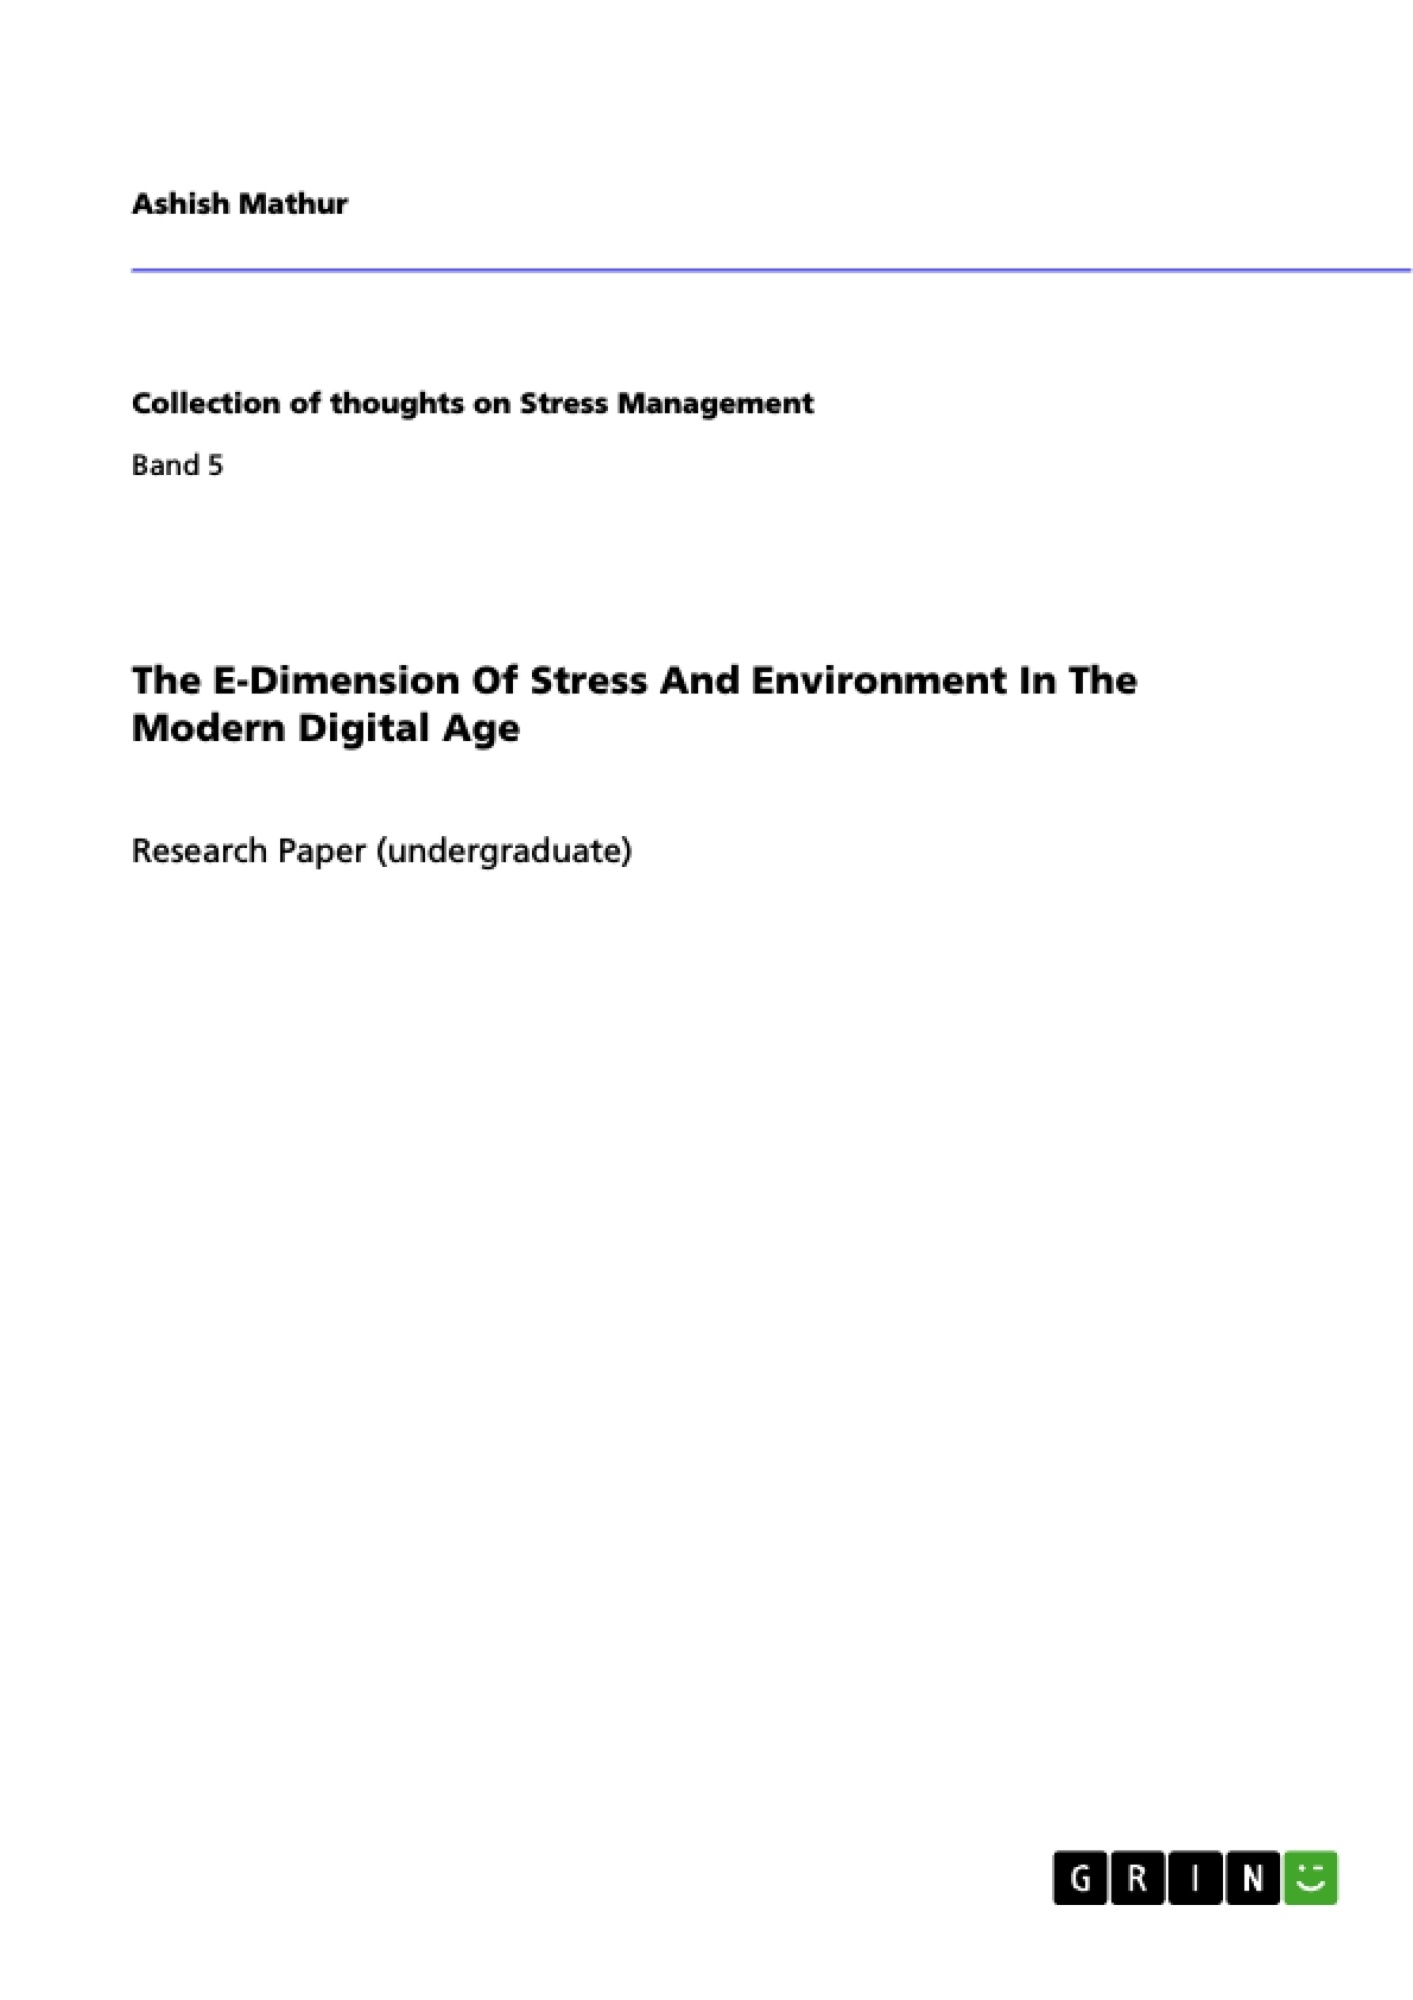 essay on challenges to environment in modern age Modern management theories and practices: a critical  elements of the external environment – economic,  reflects the basic spirit of the modern age.